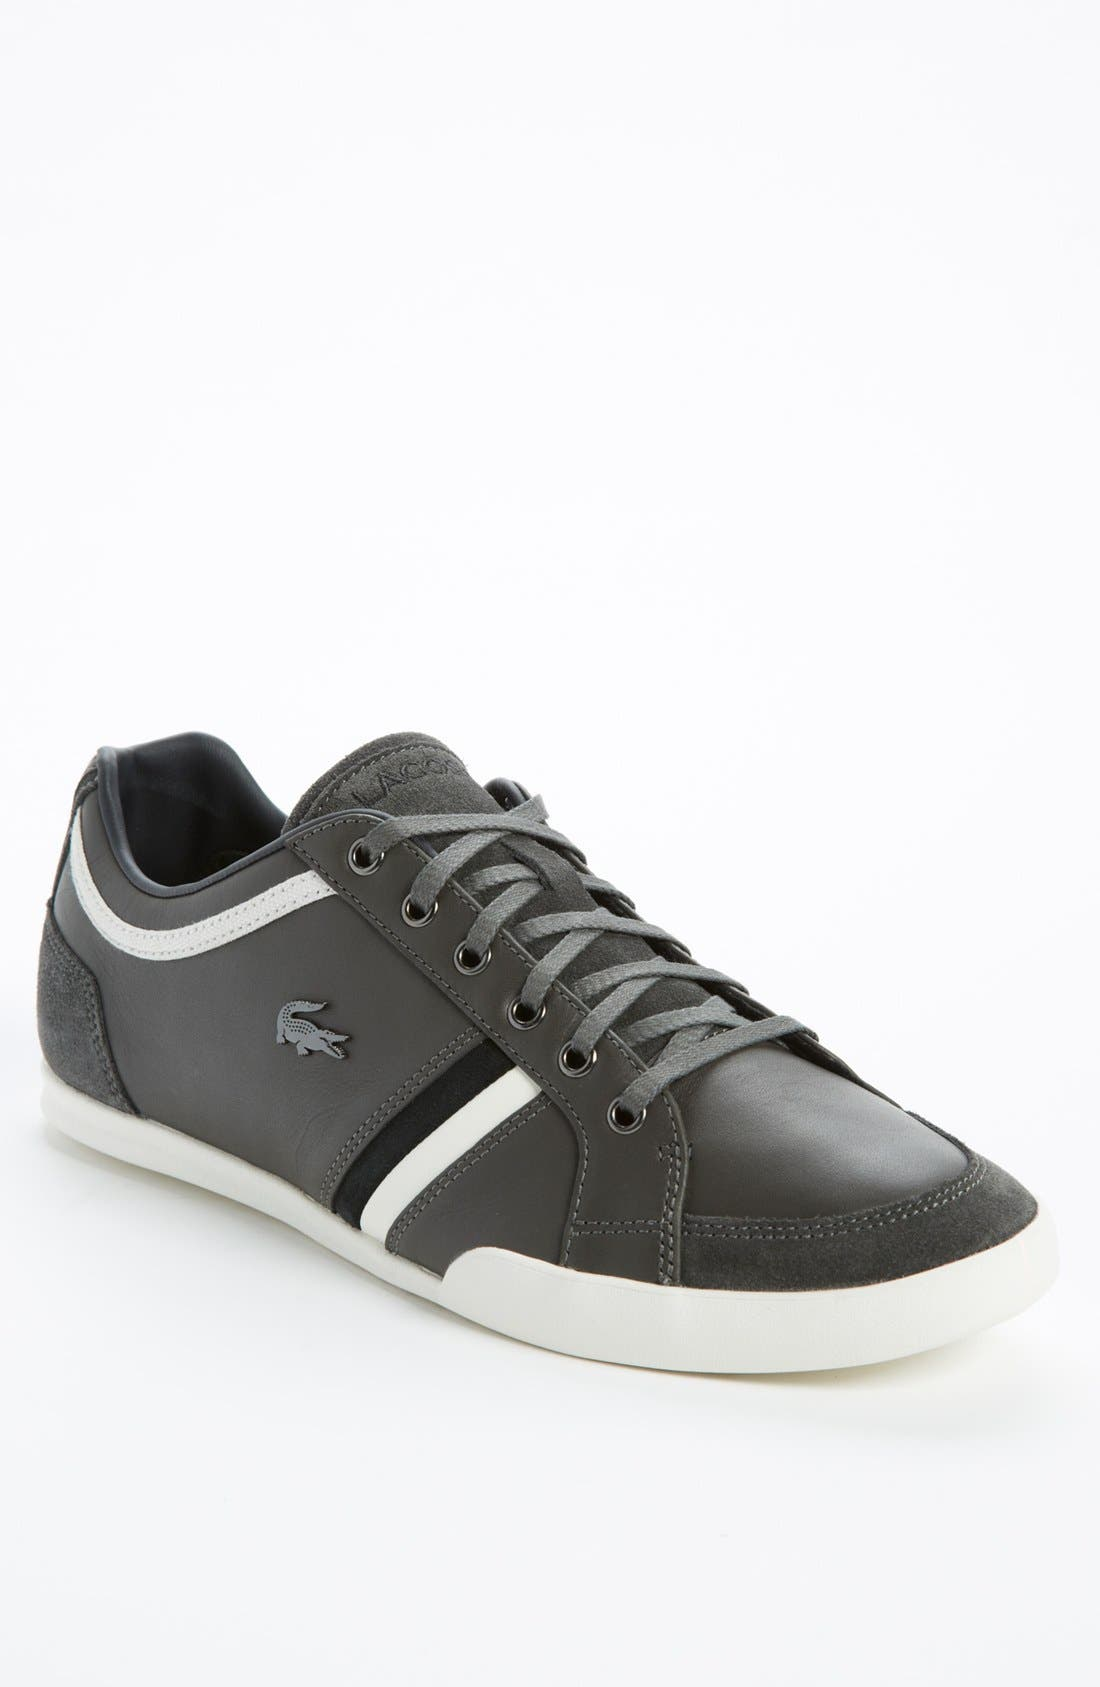 Alternate Image 1 Selected - Lacoste 'Rayford 2' Sneaker (Men)